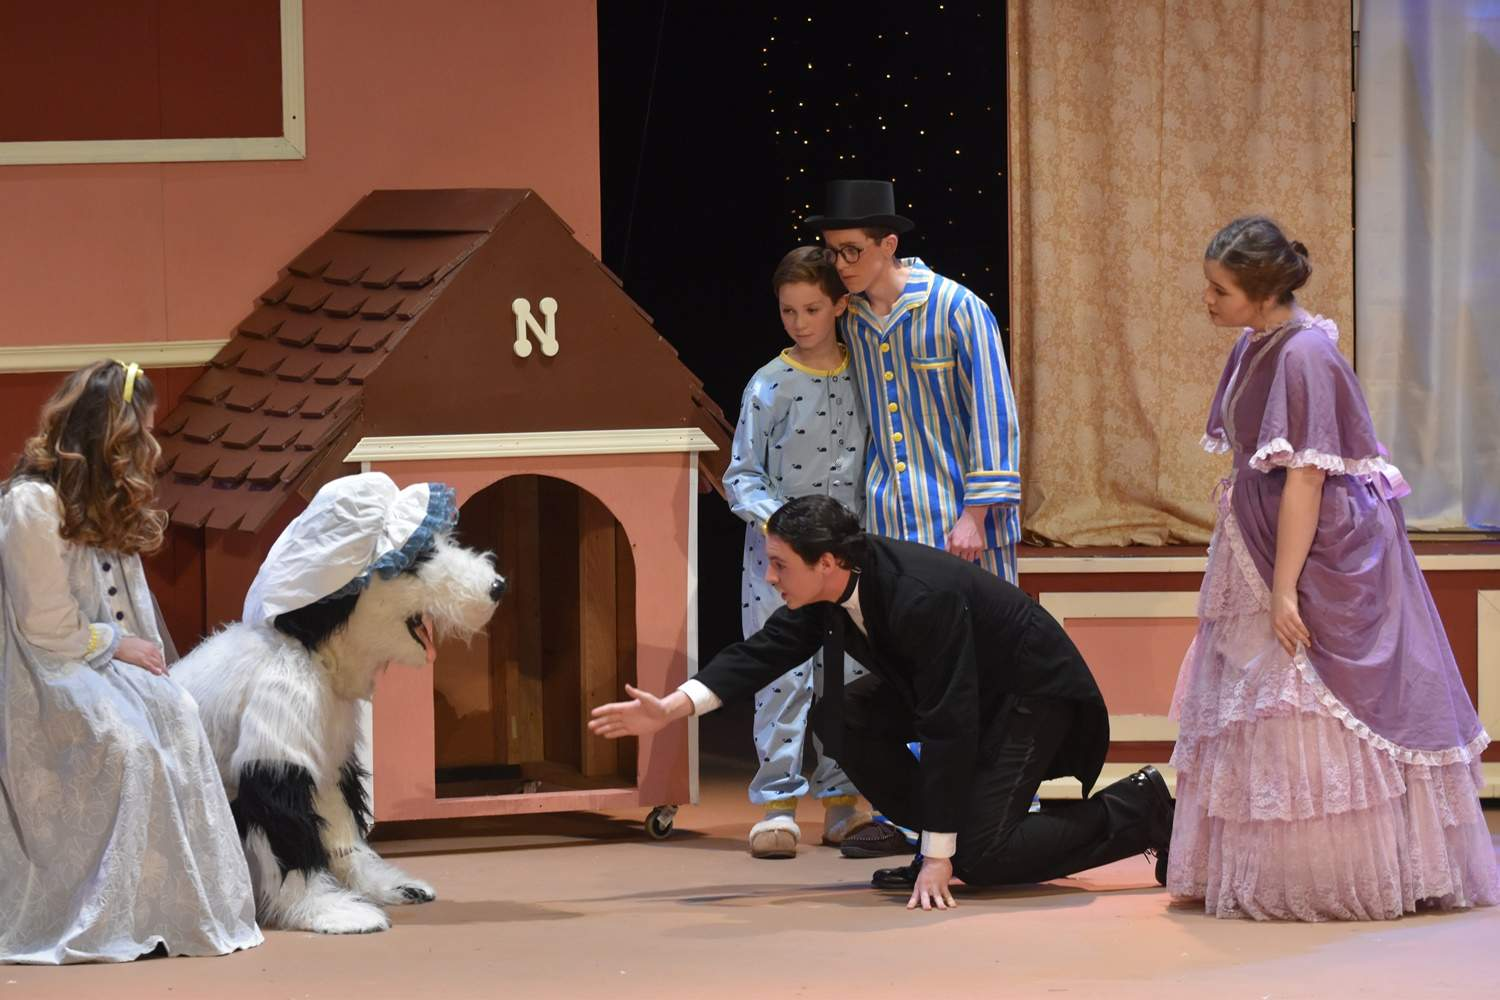 Mr. Darling (Kole Phelps) tries to catch the family's sheepdog Nana (Anthony Cortes).